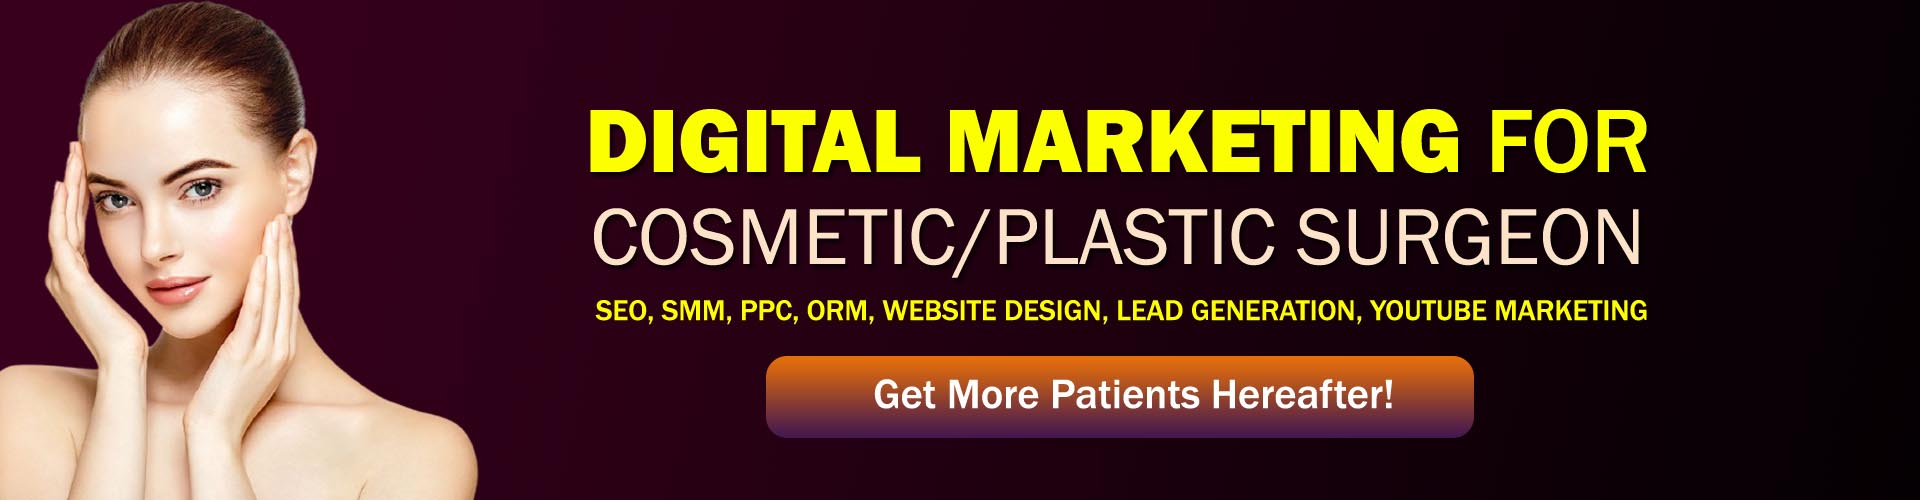 digital marketing for comsetic surgery